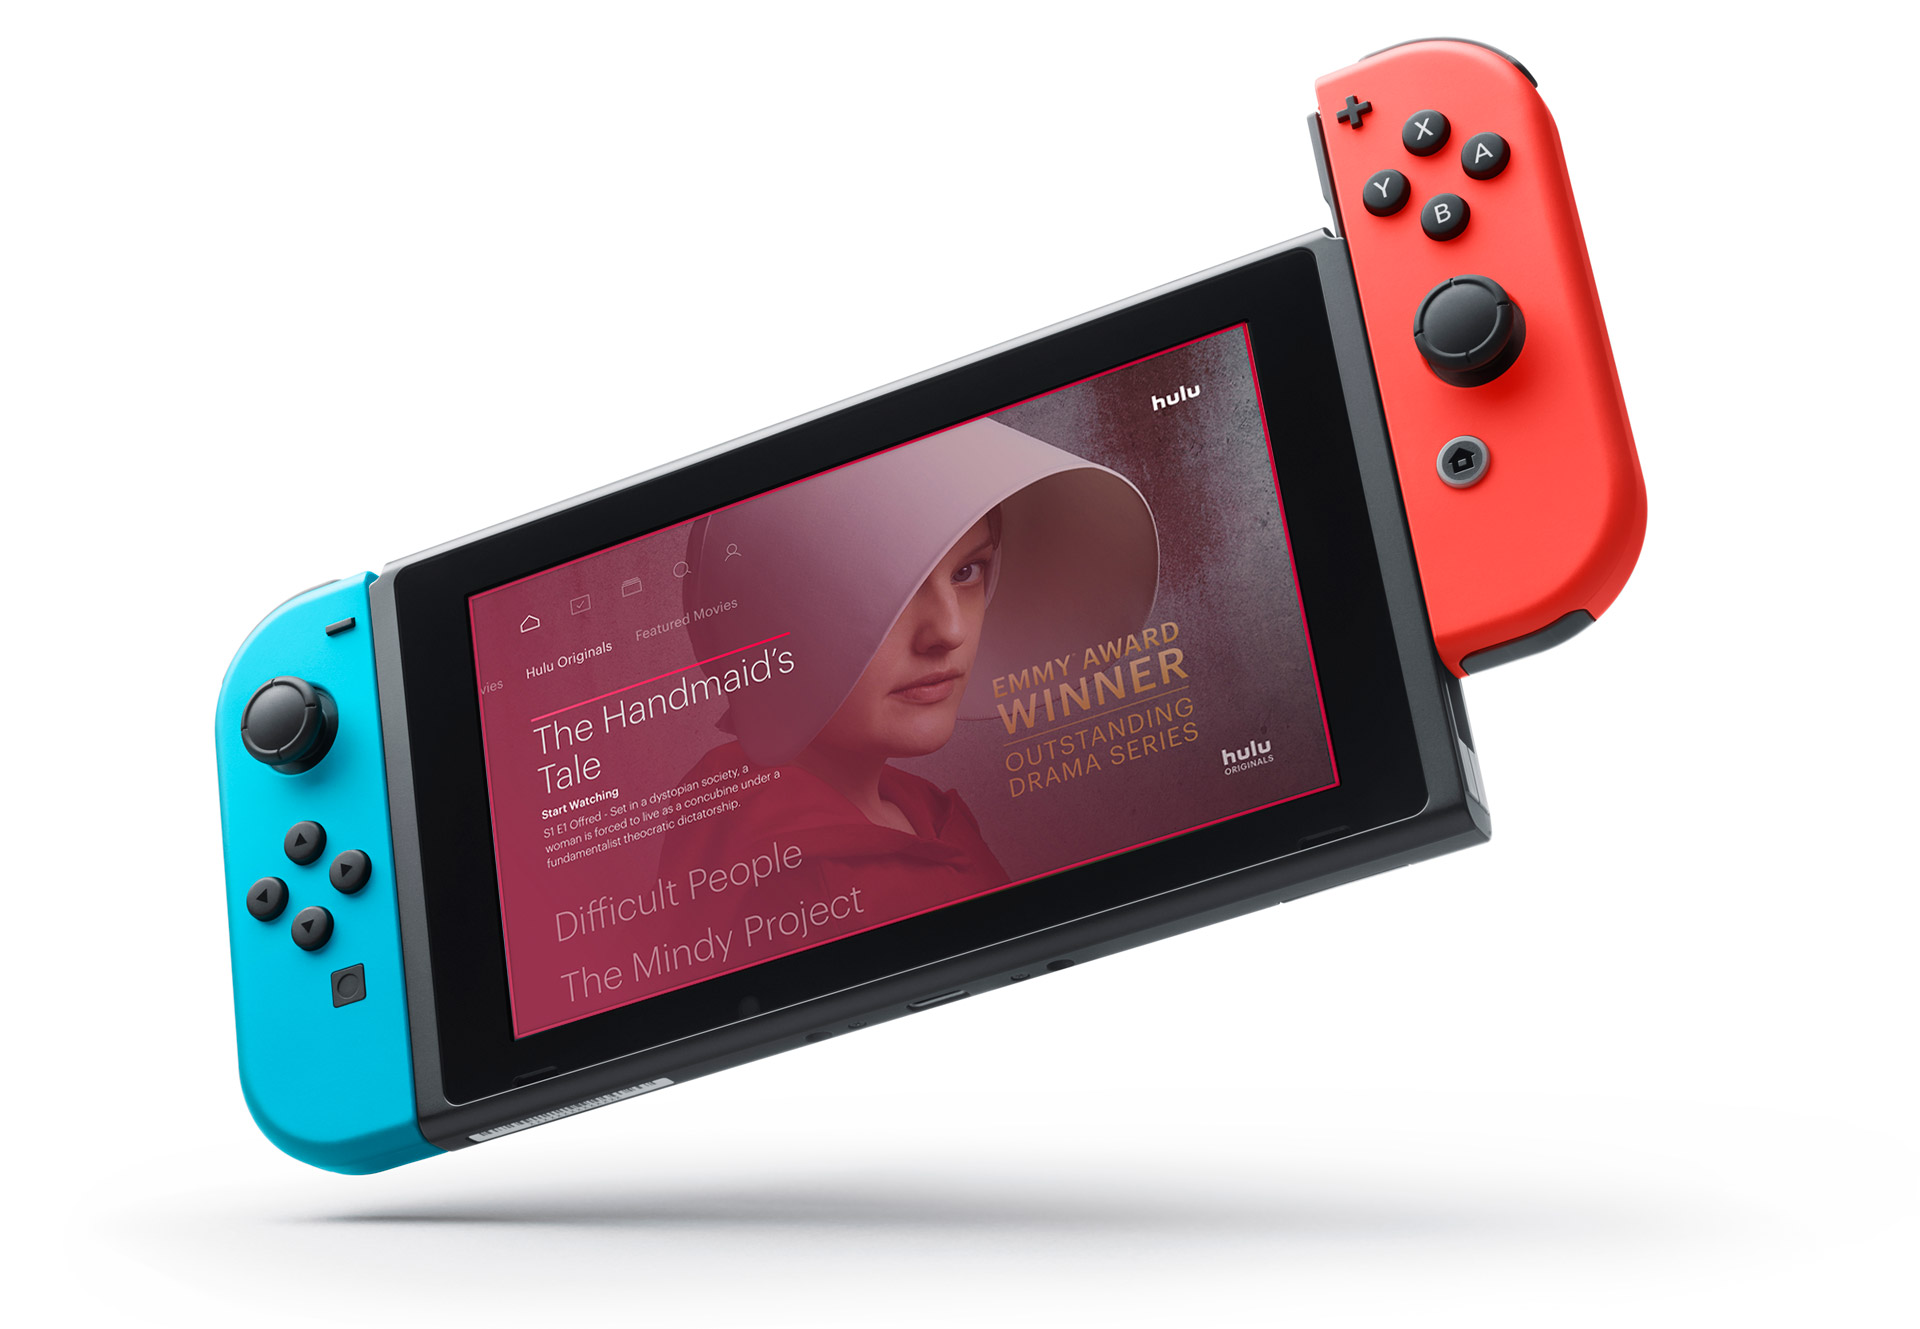 Hulu comes to Nintendo Switch today (update)